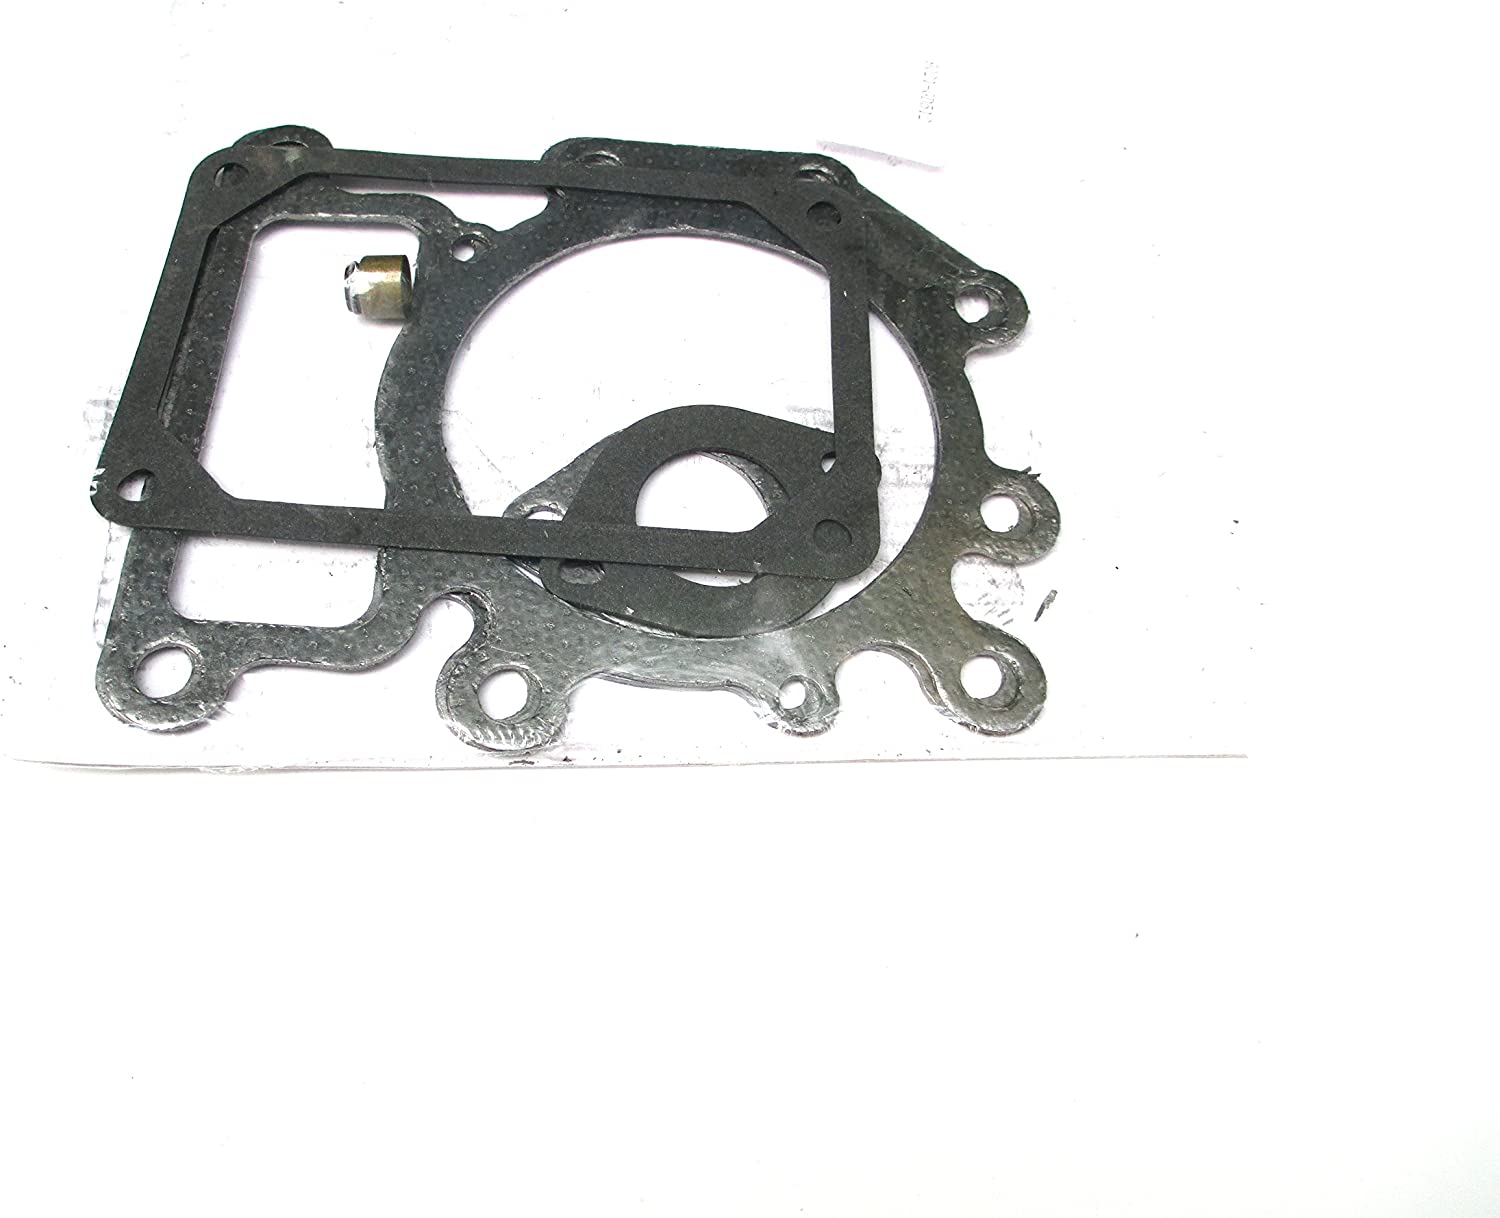 New Valve Gasket Set for Briggs & Stratton 794152 Replaces # 690190